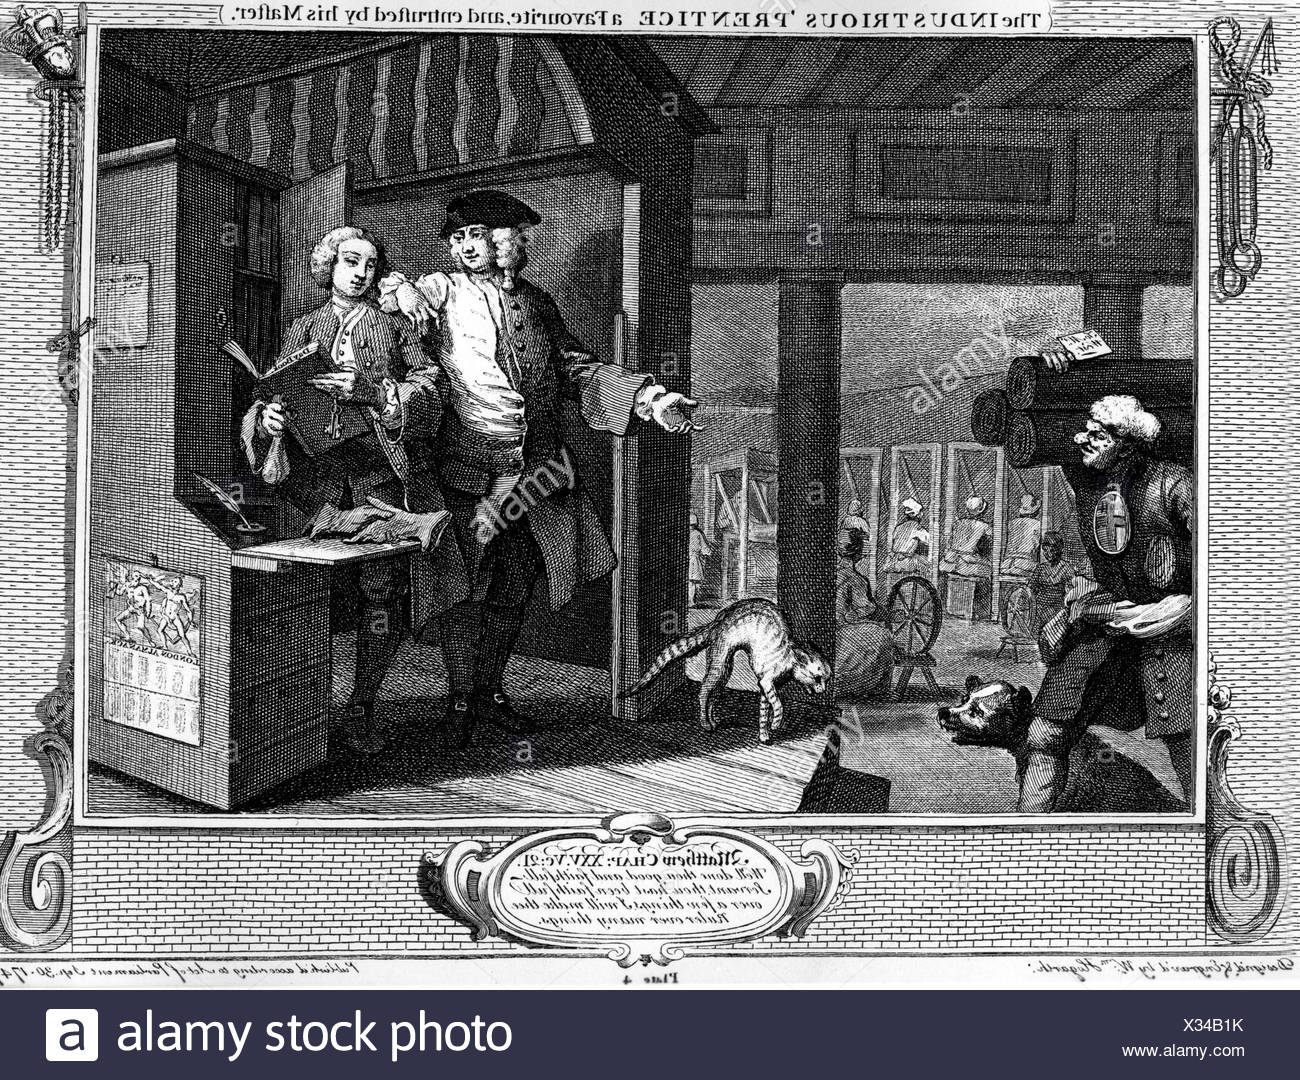 fine arts, Hogarth, William (10.11.1697 - 25.10.1764), 'The Industrious Prentice, a Favourite, and entrusted by his Master', copper engraving, 1747, Additional-Rights-Clearances-NA - Stock Image